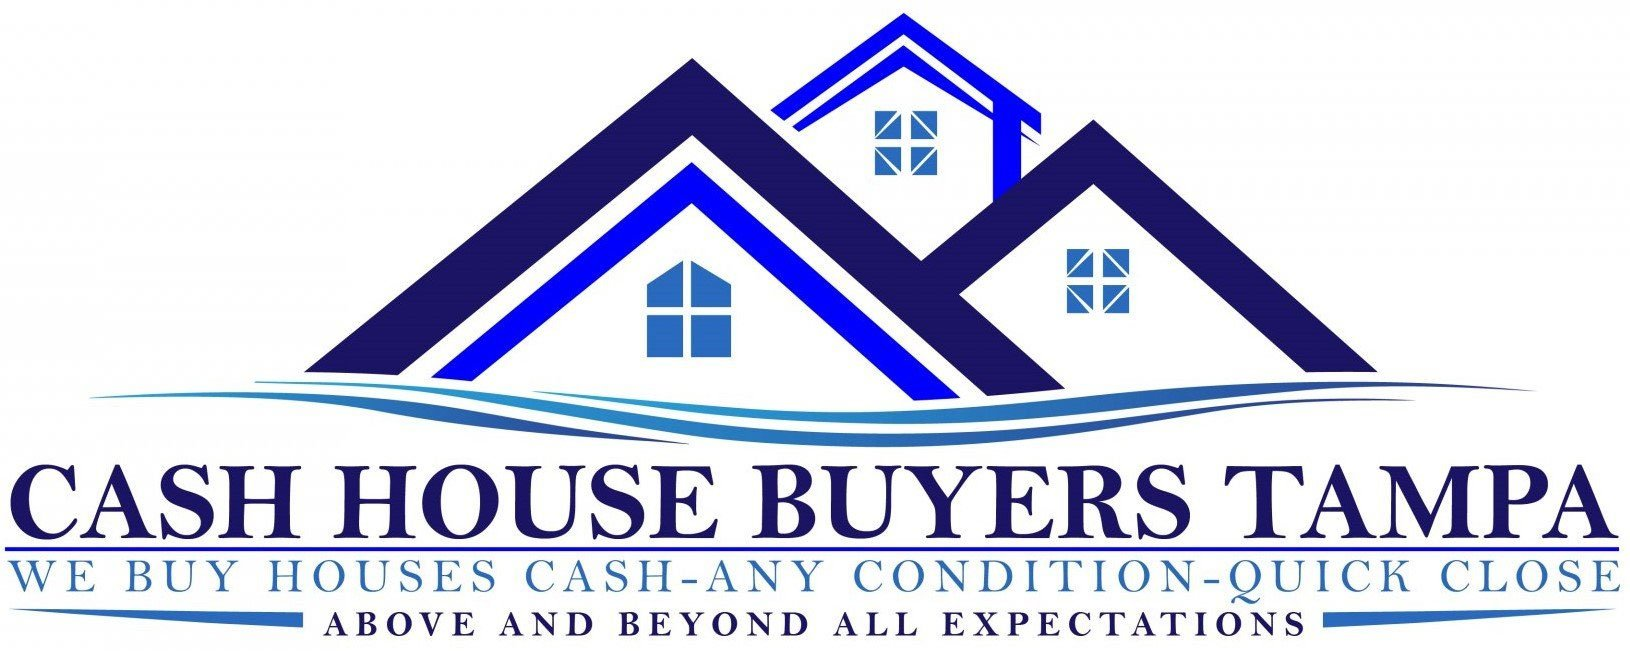 Cash House Buyers Tampa  logo